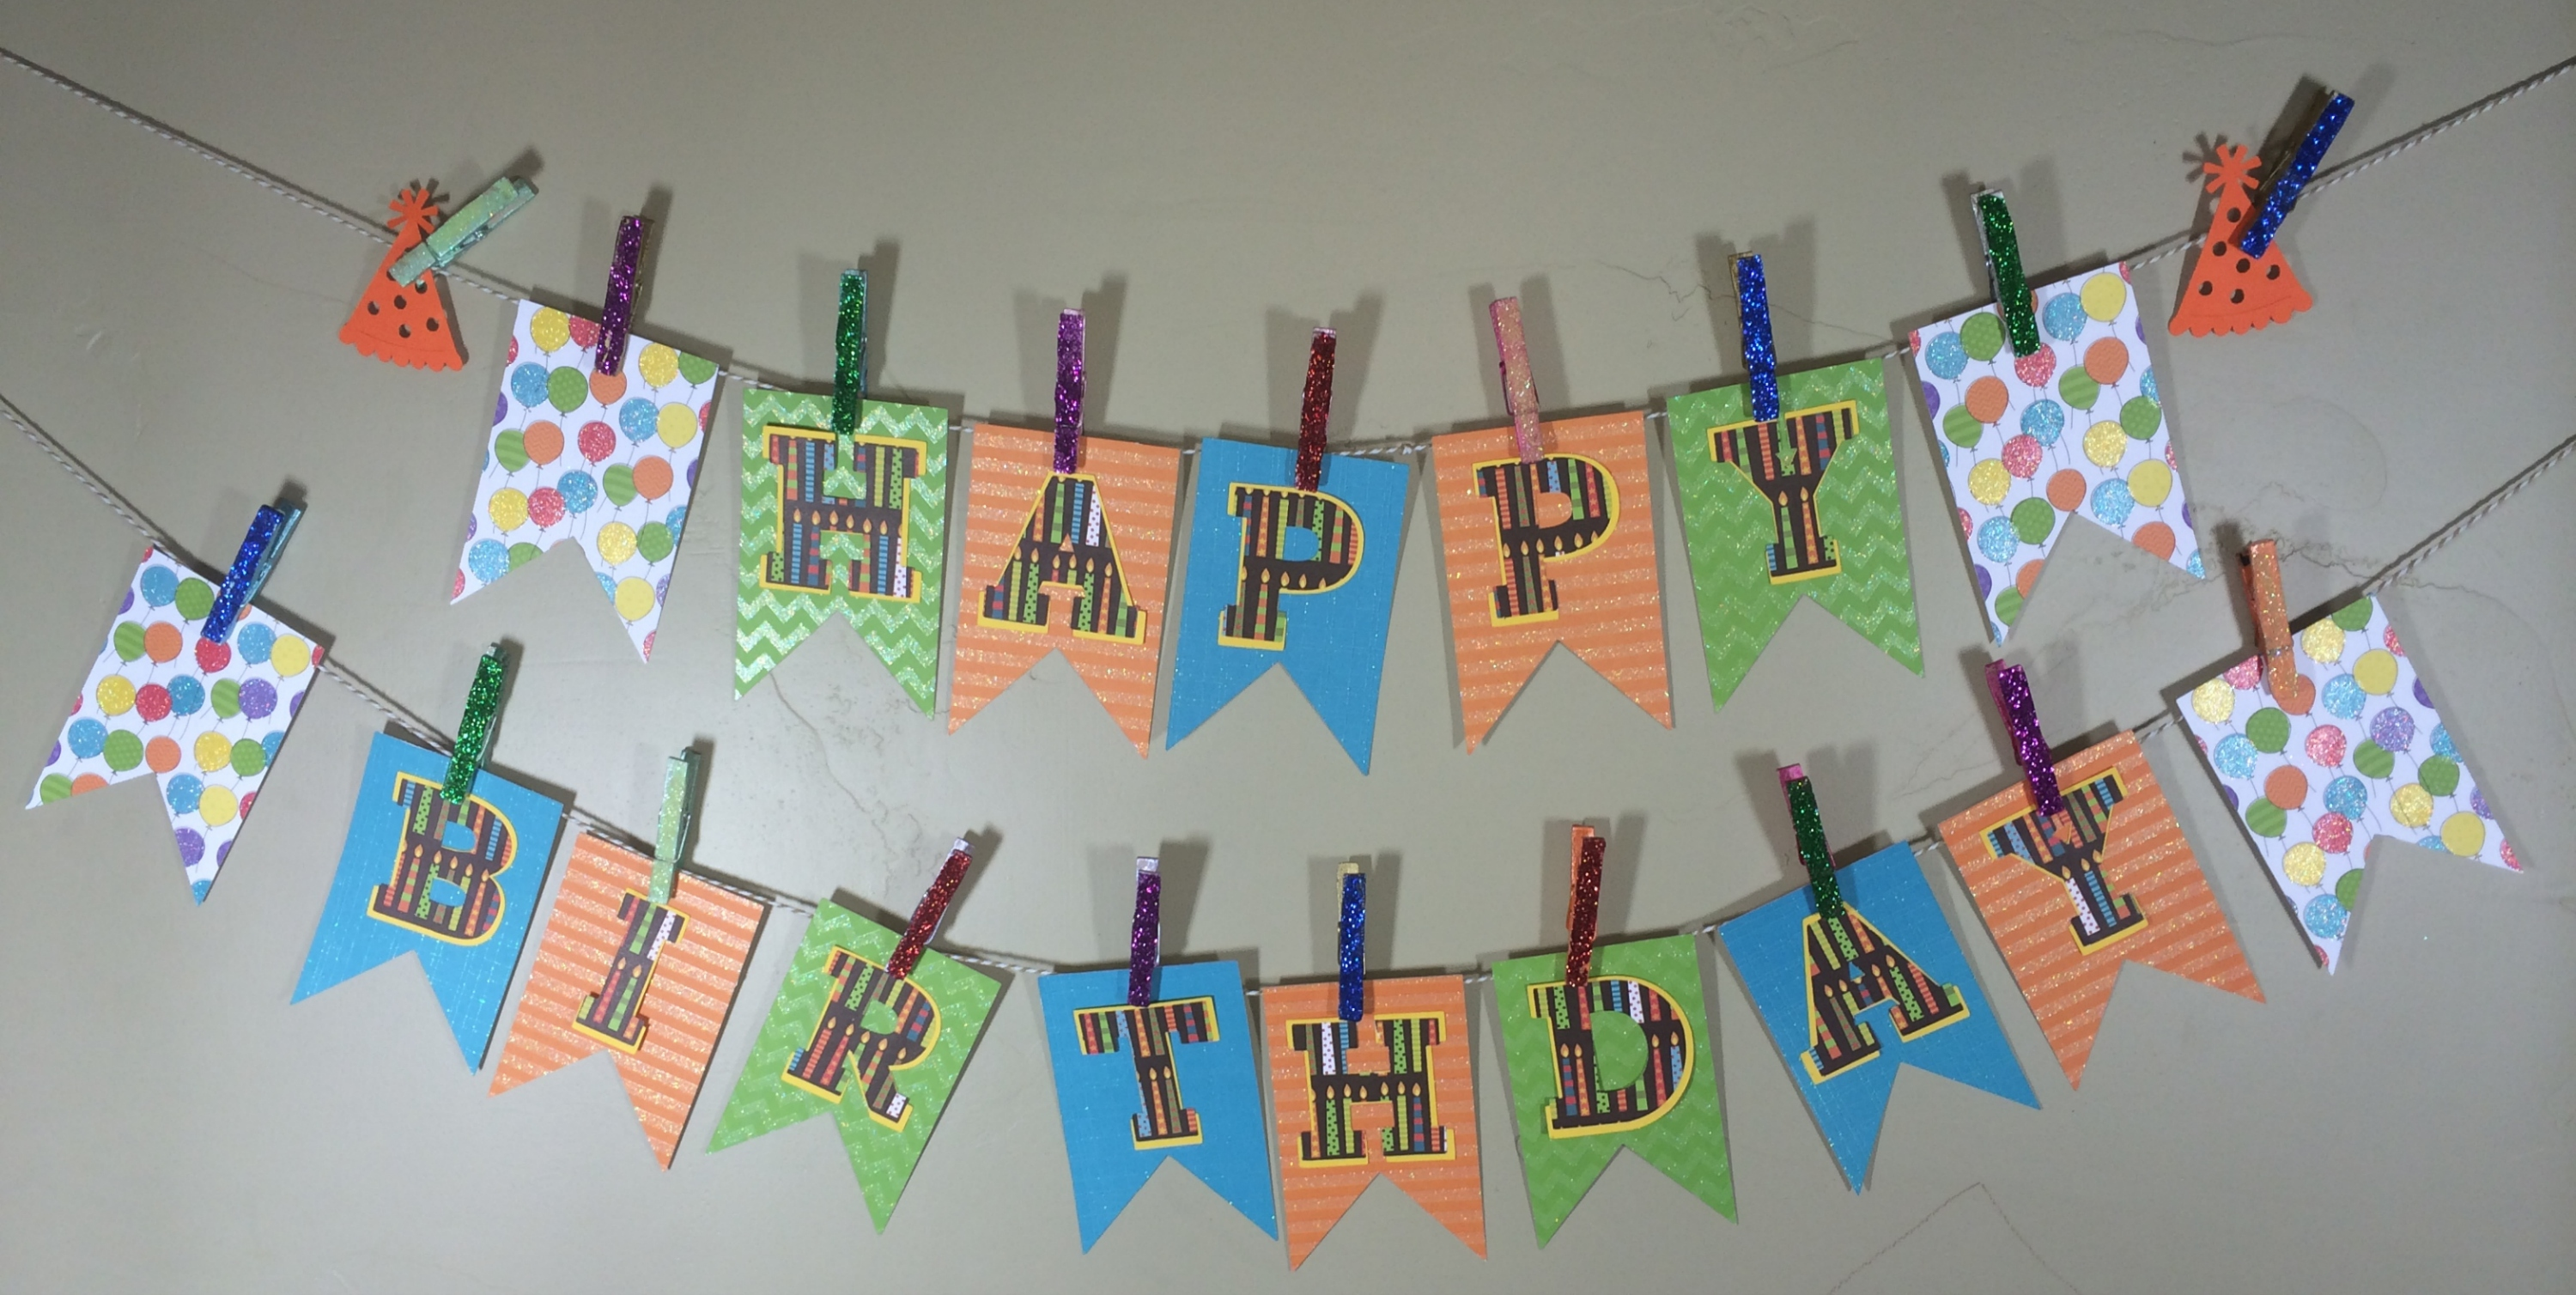 customize your own birthday banner ; make-a-birthday-banner-online-best-of-make-your-own-birthday-pennant-banner-a-sparkle-of-genius-of-make-a-birthday-banner-online